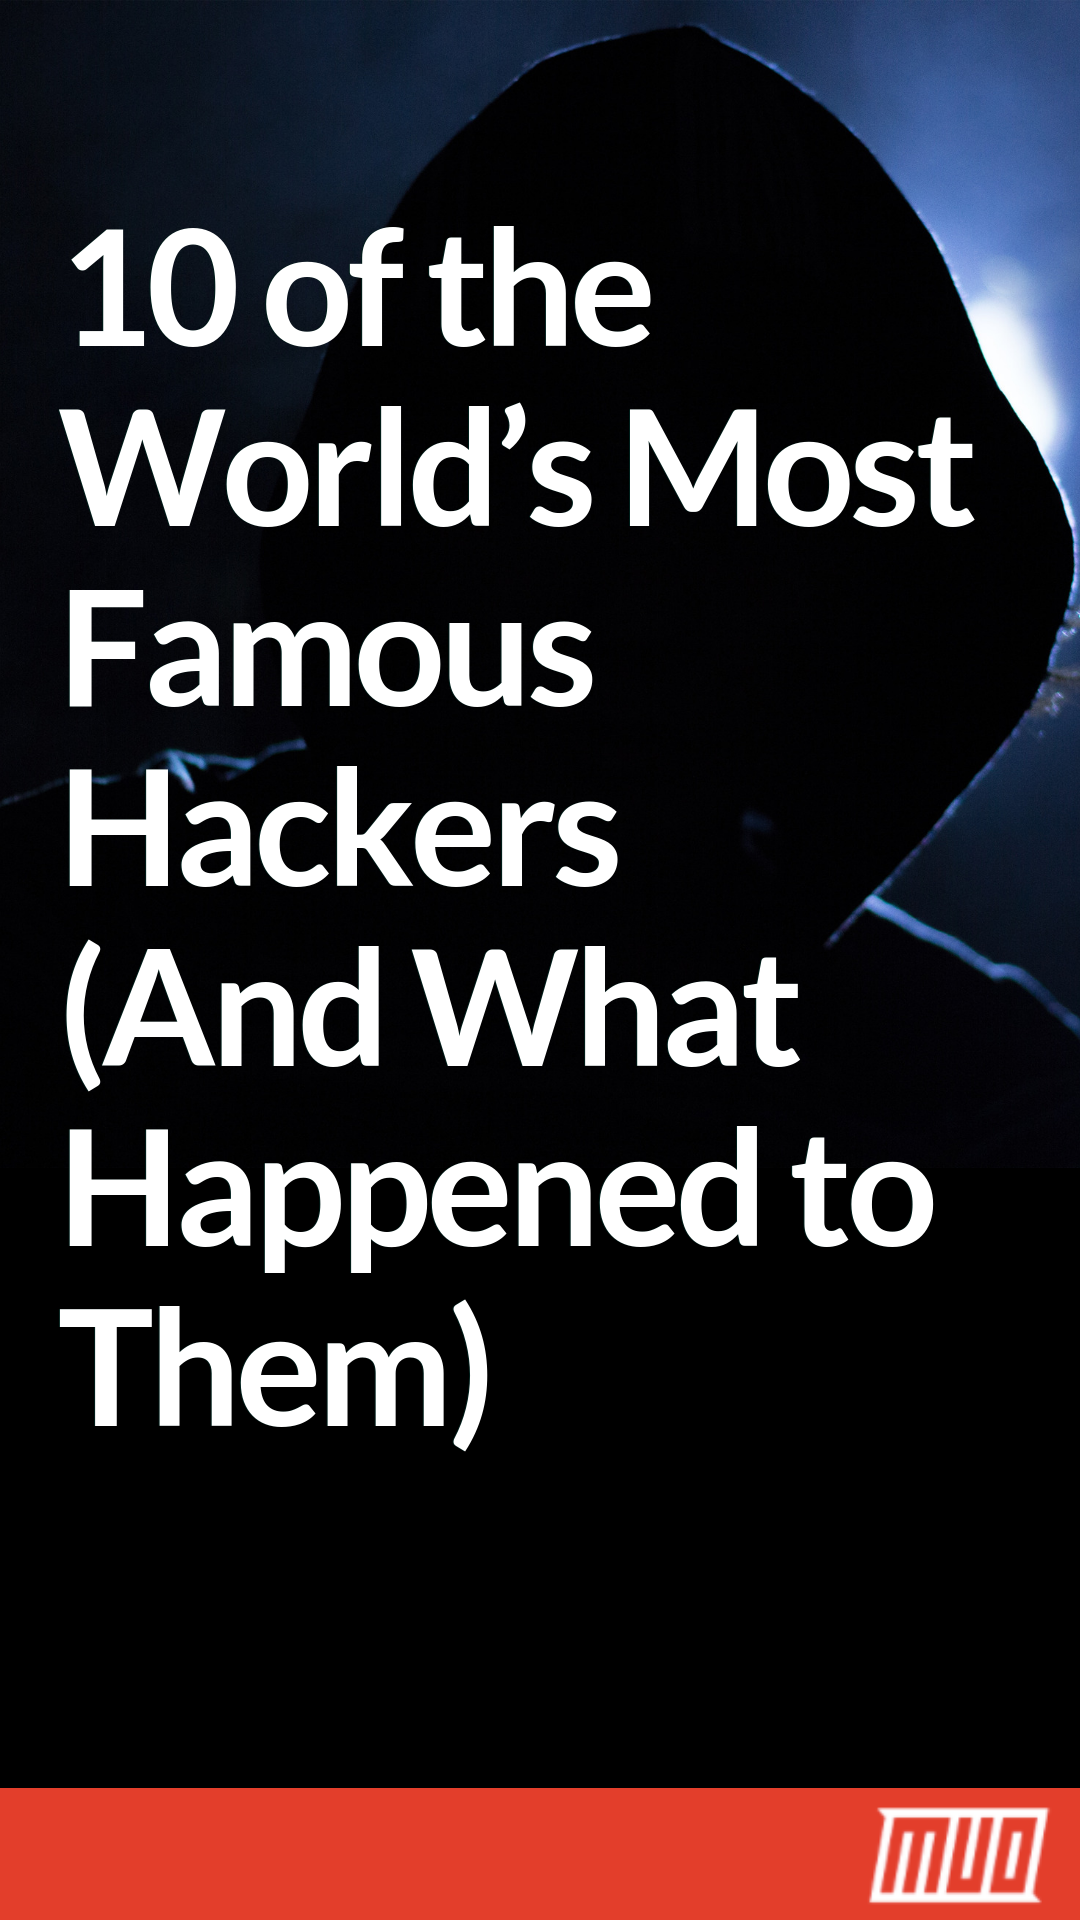 10 of the World's Most Famous and Best Hackers (and Their